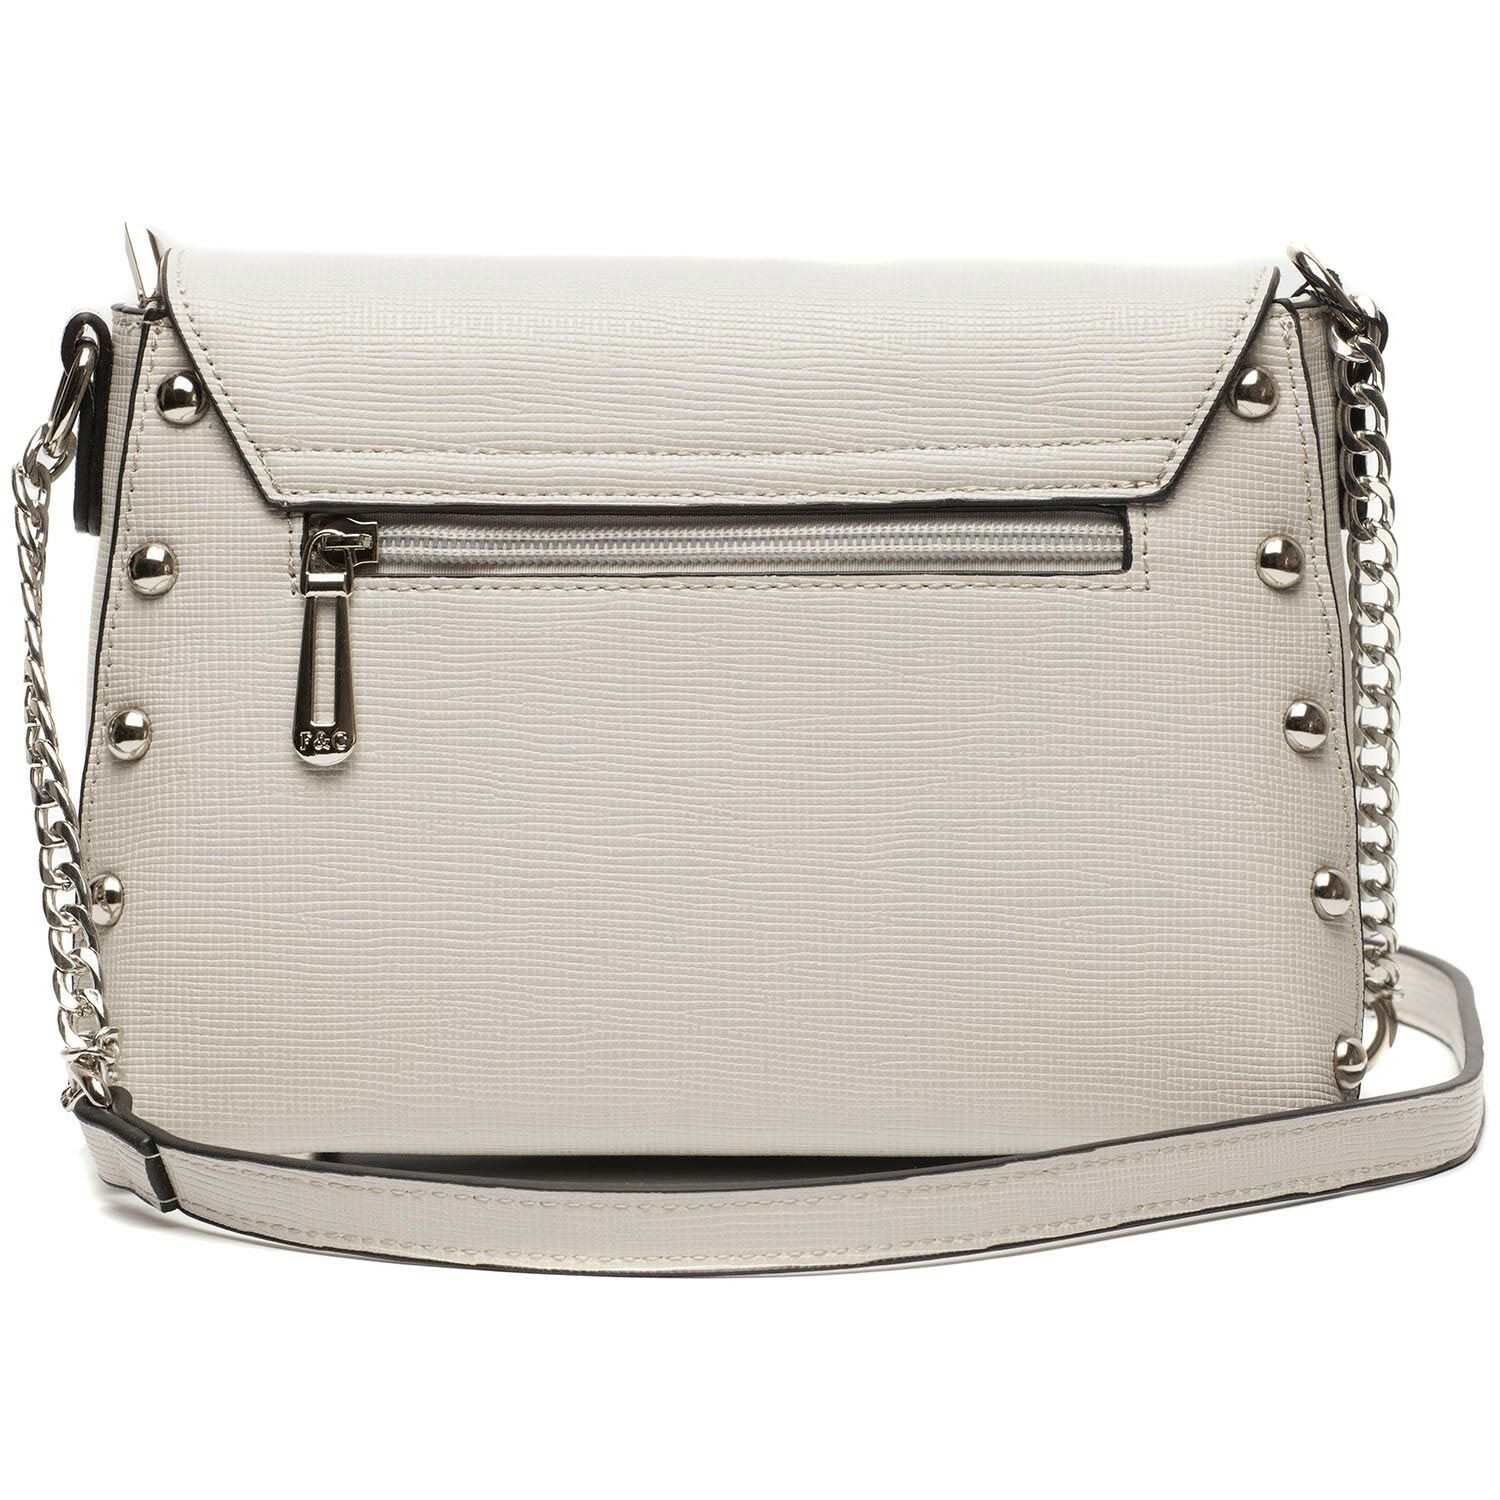 GREY ELITE CHAIN BAG